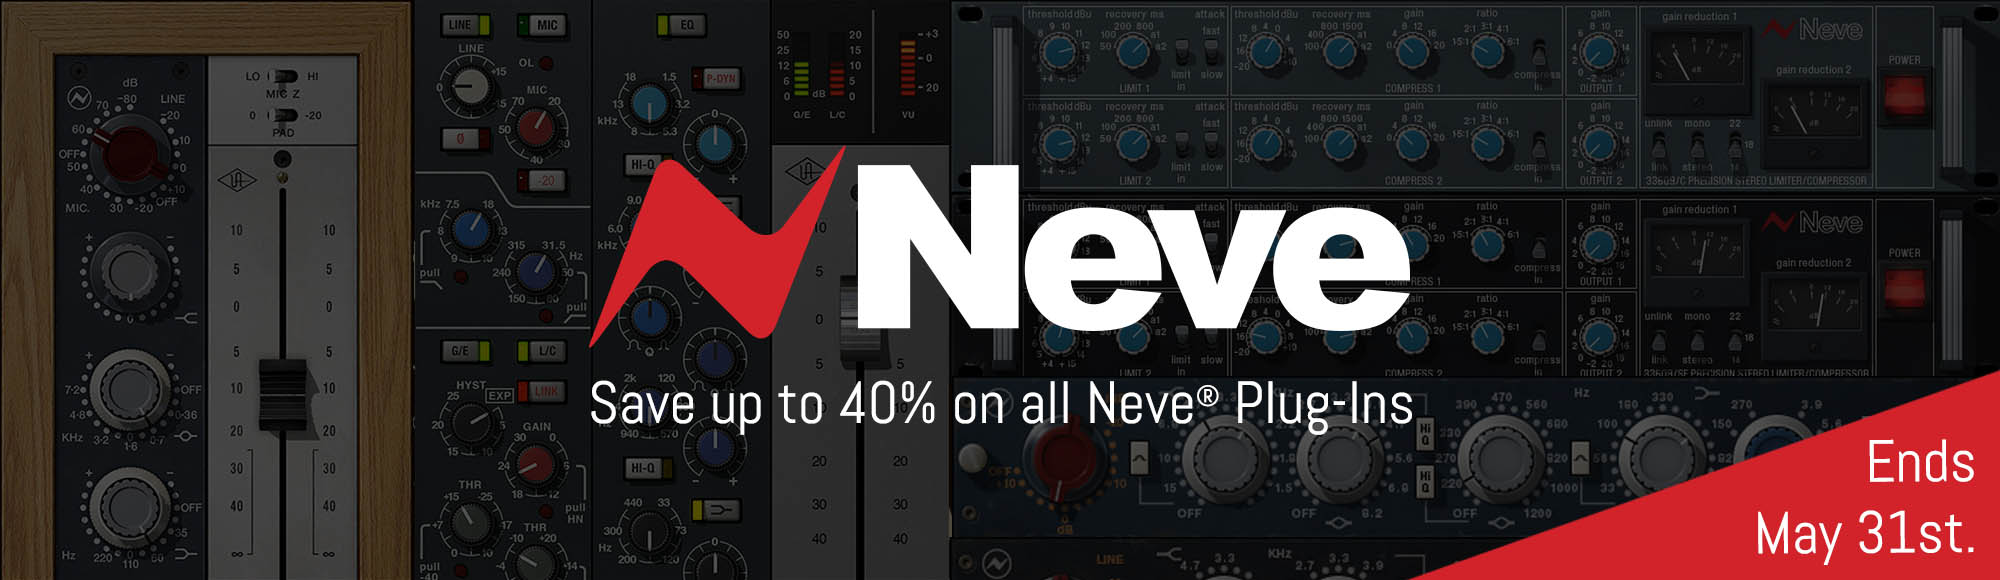 Save up to 40% on all Neve plug-ins